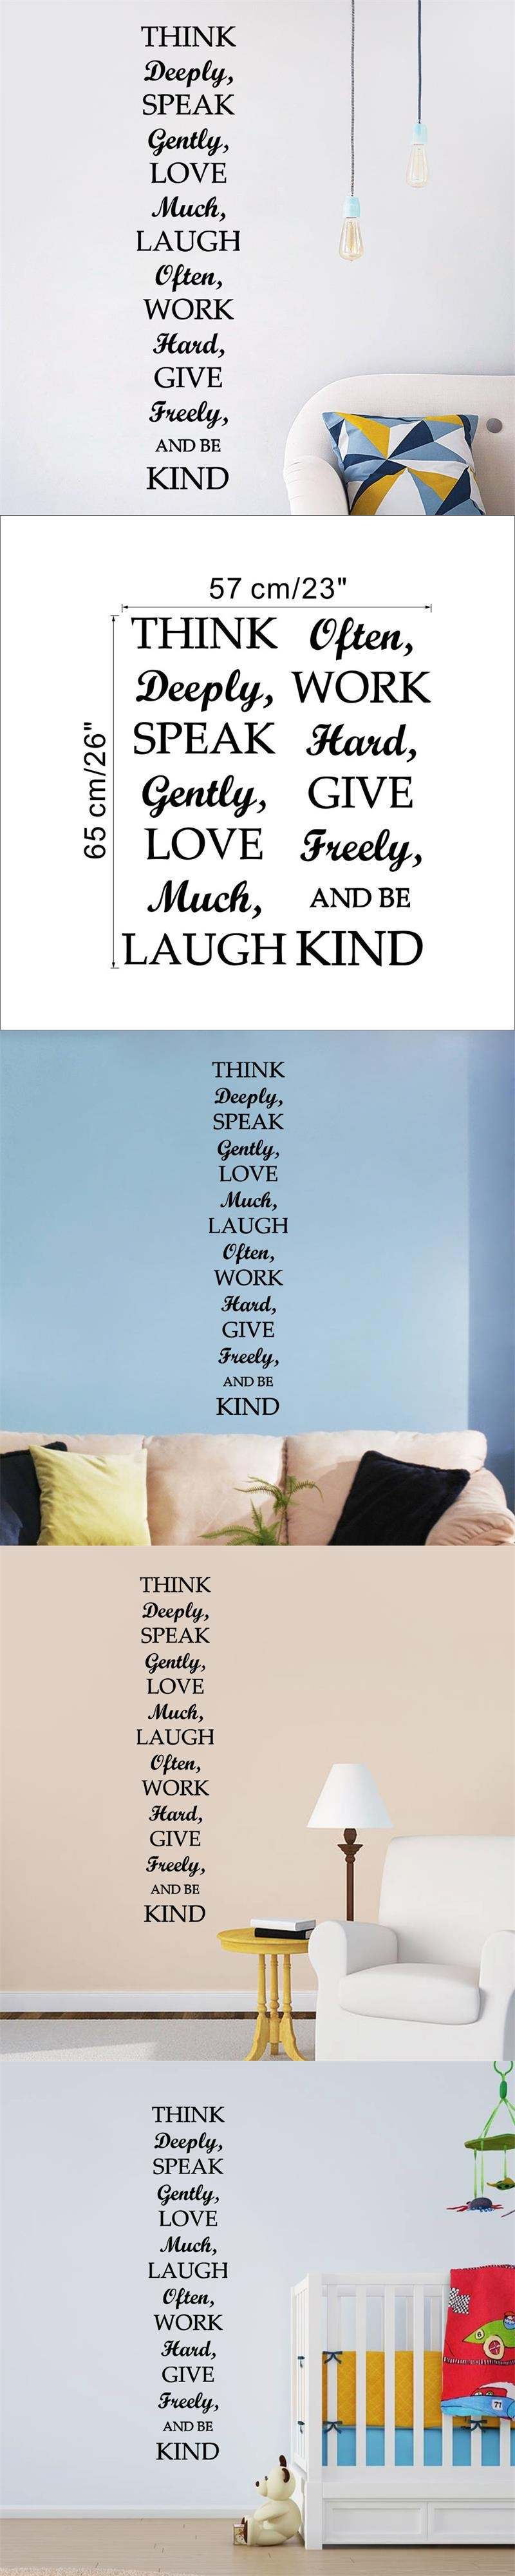 New home decor be kind inspiring quotes vinyl removable wall